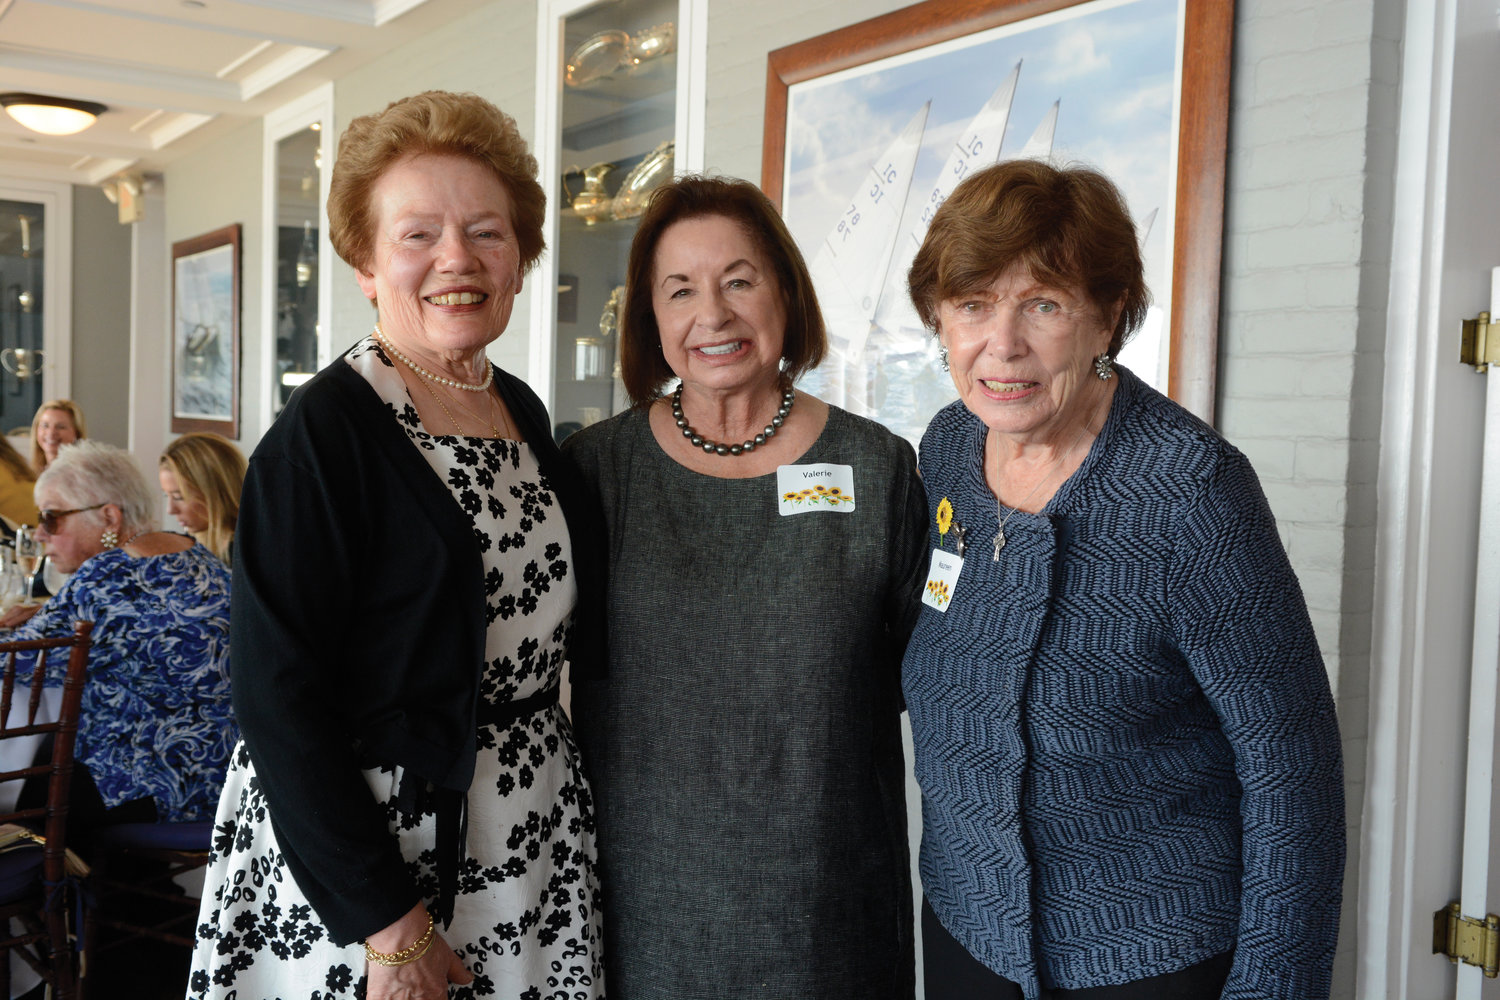 Honorees Ginny Quinn, Valerie Mastronardi and Maureen Morris gather for a group photo.